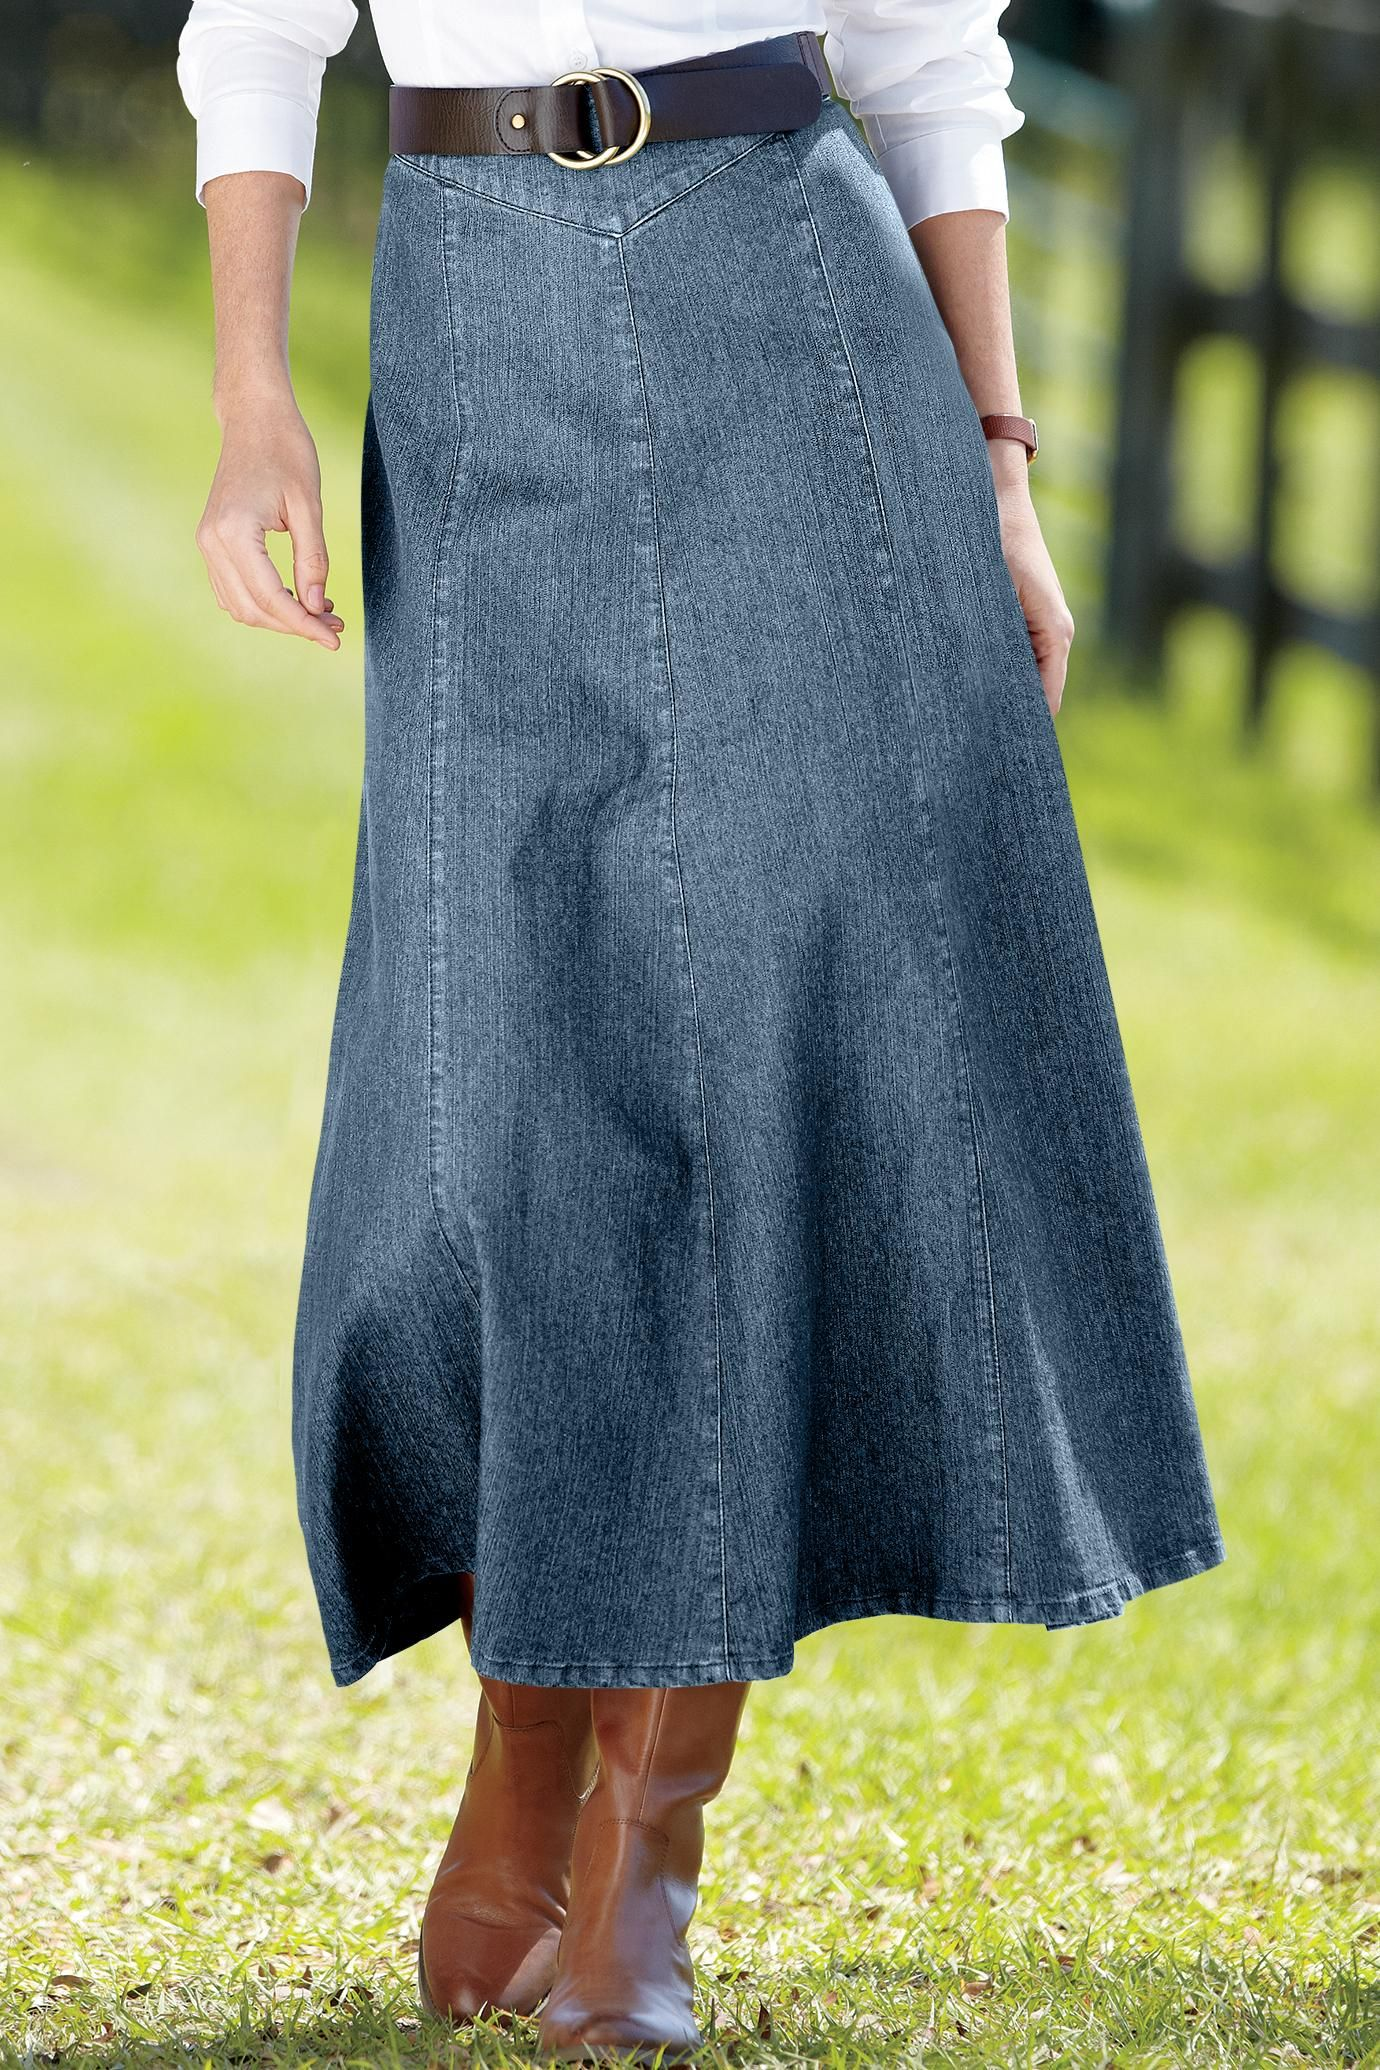 438699a486f7 Long Denim Skirt Women s - love the long skirt with the boots! - k. 10 8 13